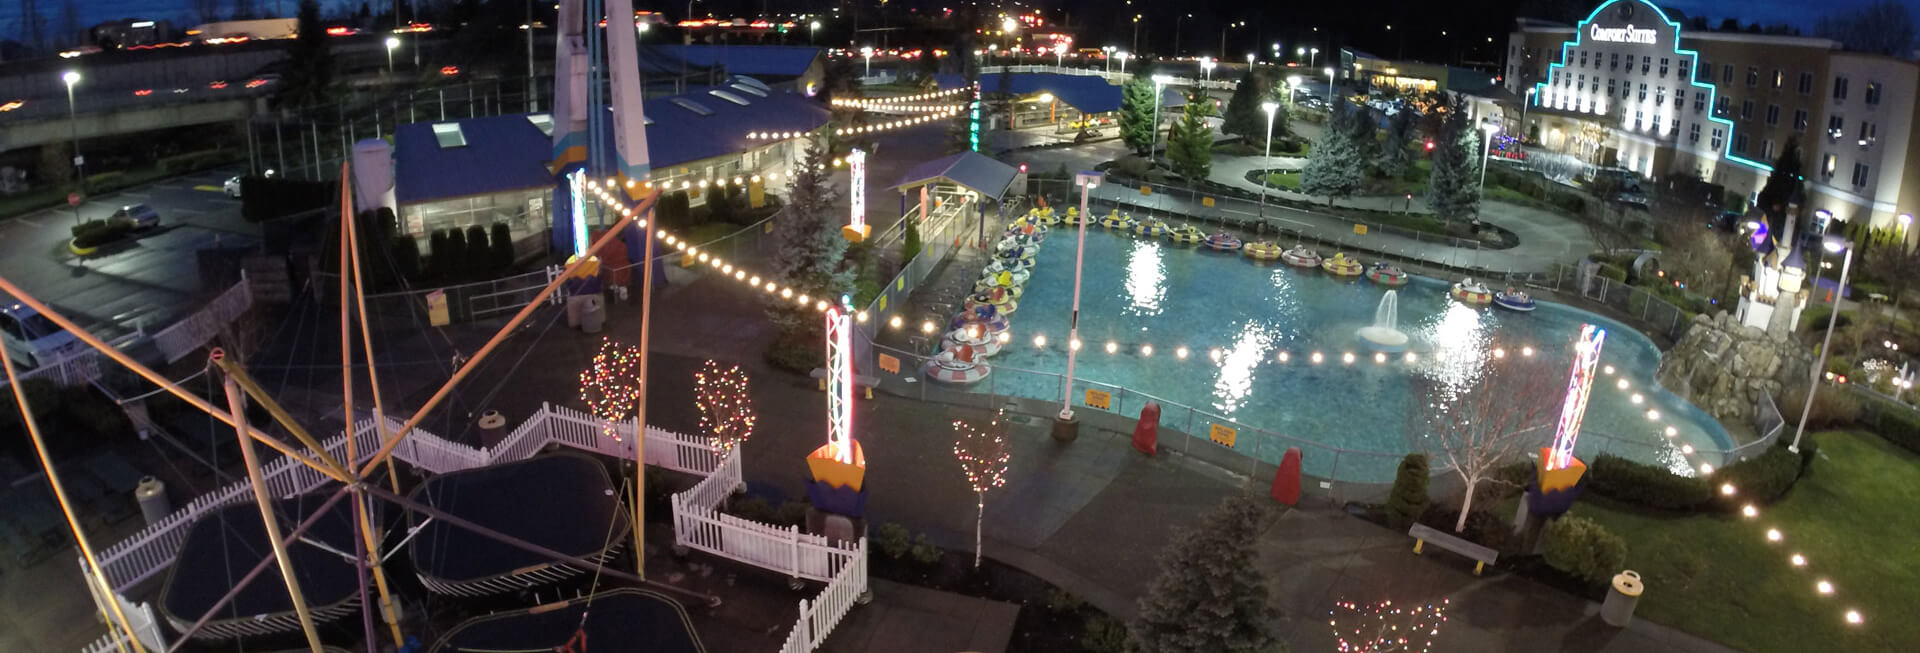 Family Fun Centers and Bullwinkle's